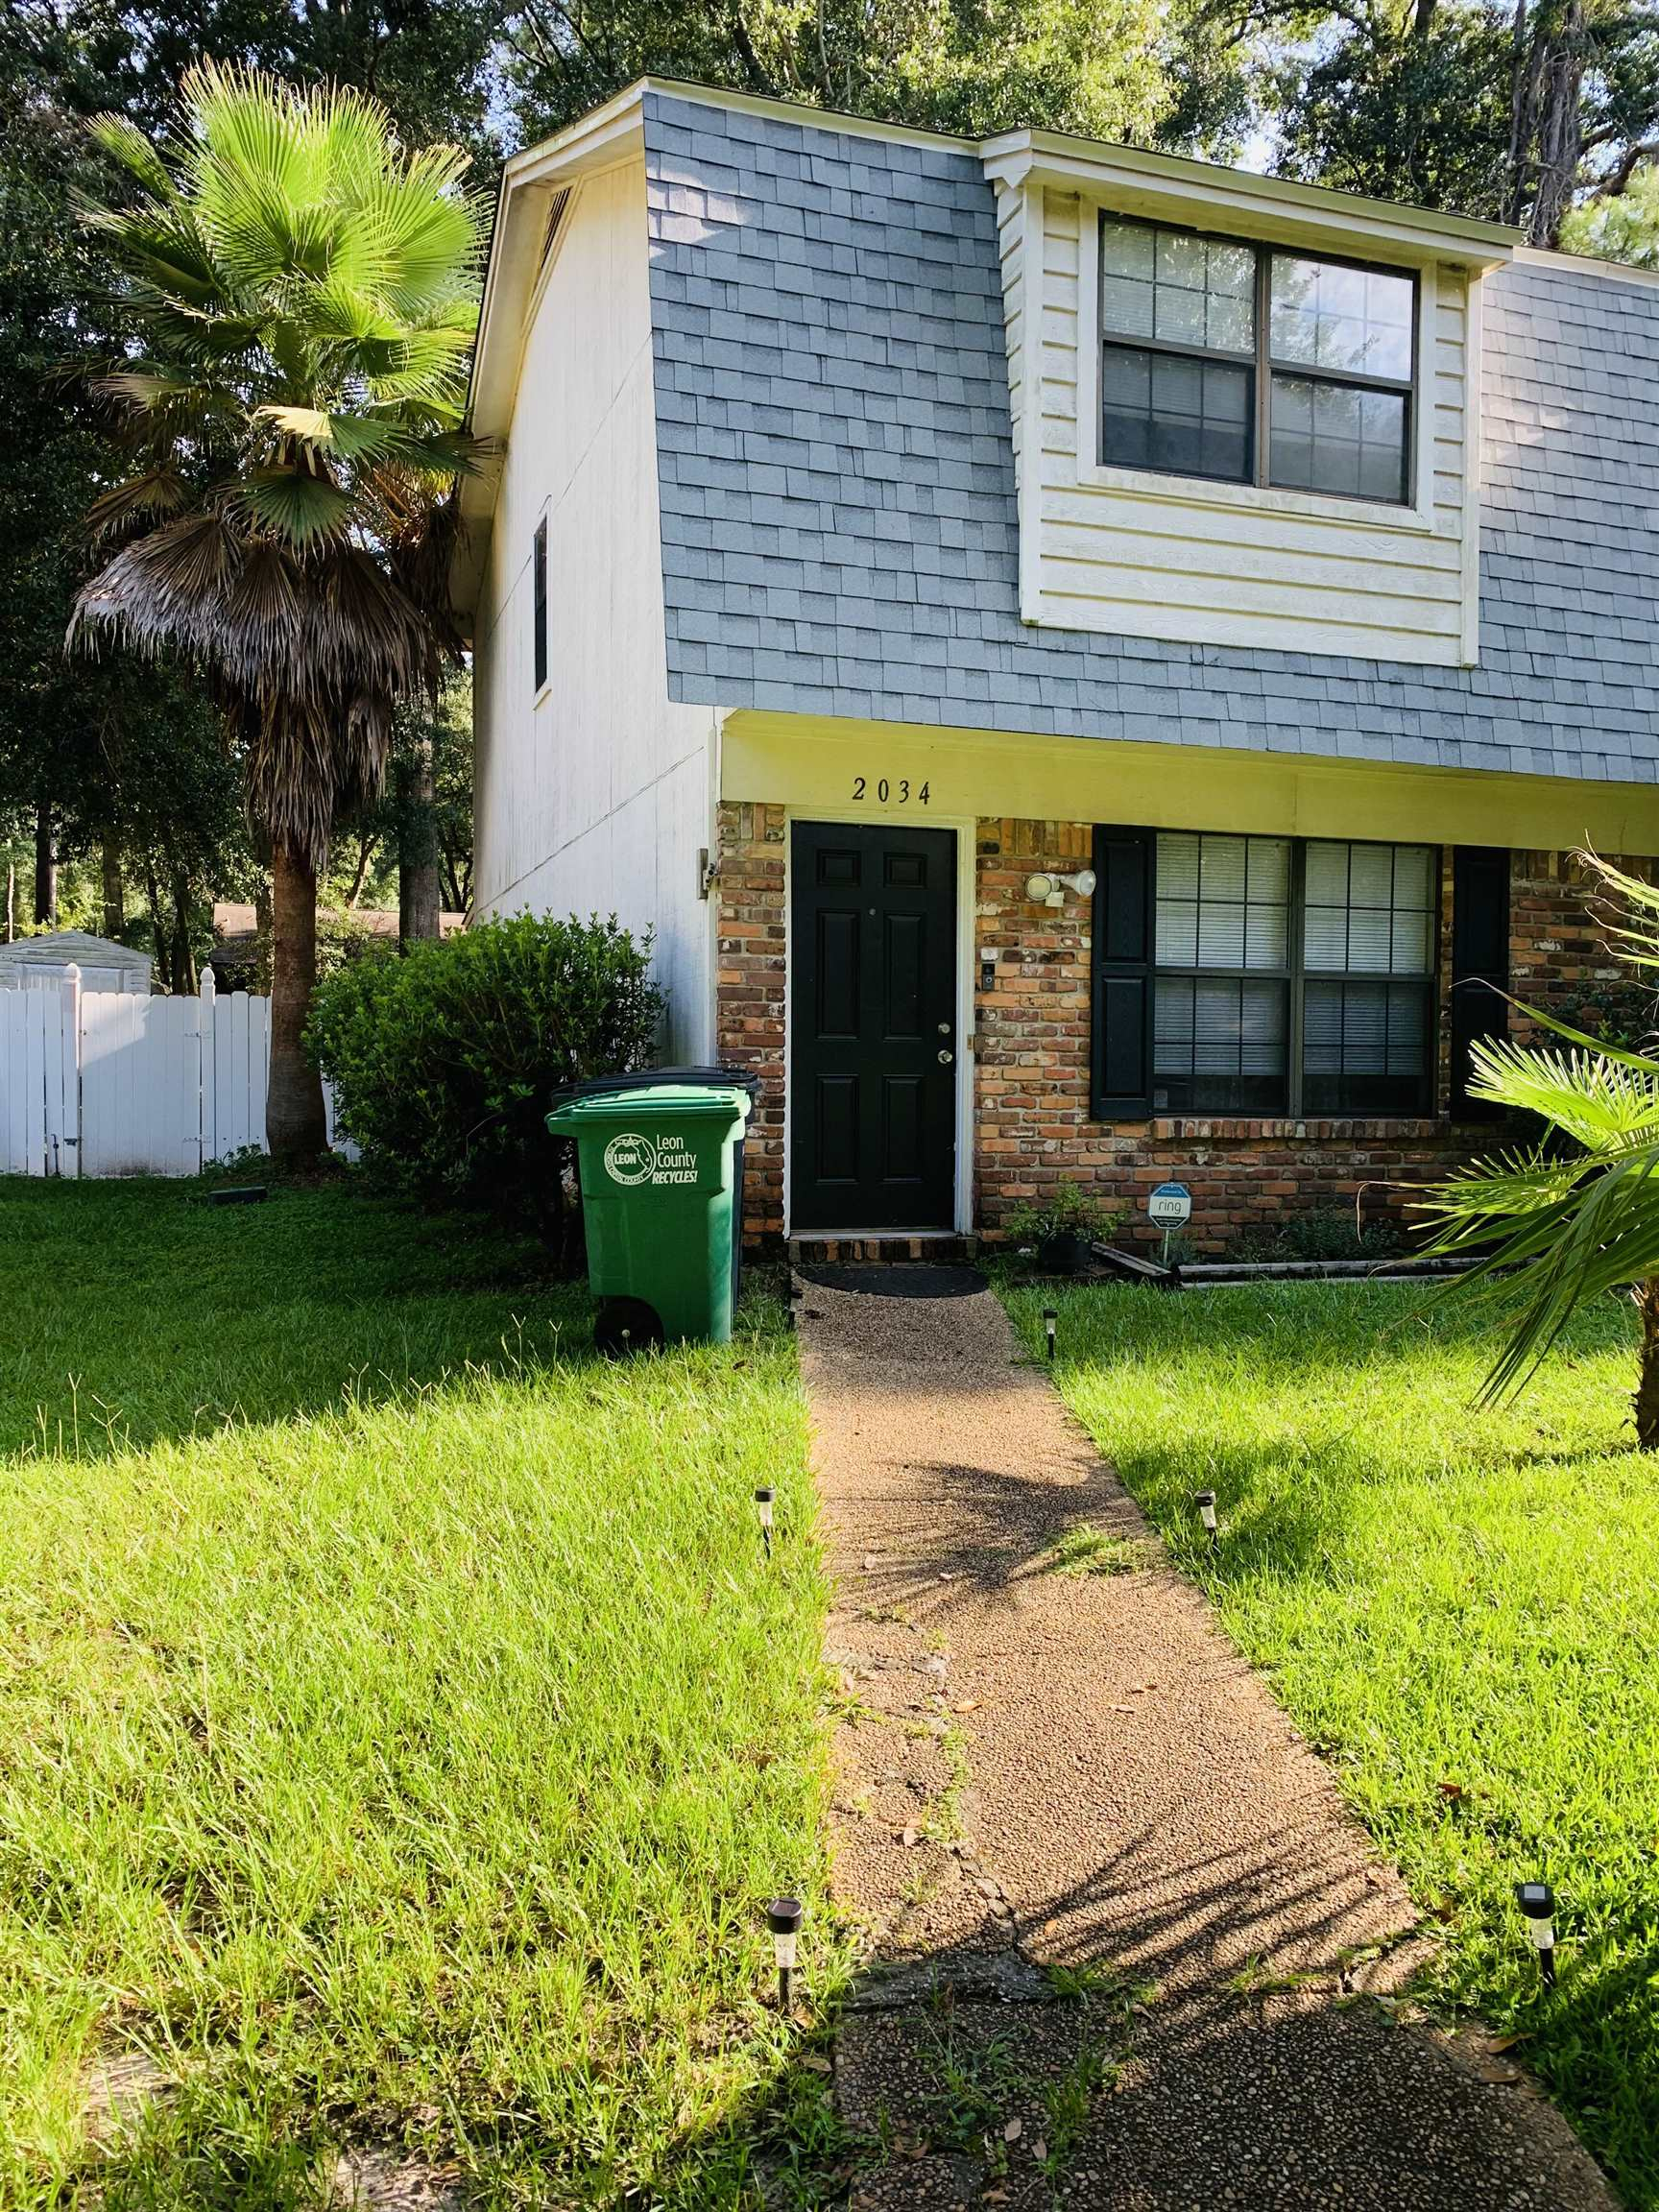 Desirable location, close to  downtown area with a quaint and peaceful feel. This town house was remodeled in 2013, roof was replaced in 2019, A/C was put in in 2012, A 4 point inspection was done within the past year. Home has a large privacy fenced yard. There is a large 8x16 metal storage building that can stay or can be removed by owner. This shed offers a lot of storage space. A comfortable 2 bedroom (both rooms upstairs), two bath home great for a new home owner or investor. Has plenty of closets; linen, vacuum, pantry and bedroom. Tile and laminate flooring throughout the home. Enjoy a restful evening on the screened in back patio or a fire in your private back yard.  The pet door allows easy access for your furry friends. The laundry room is inside the screened area allowing a cozy place to do laundry and not heat up the home. The townhouse is currently under lease until March 2022. Come see this gem of a home it won't last long. Rooms dimensions to be verified by buyers.